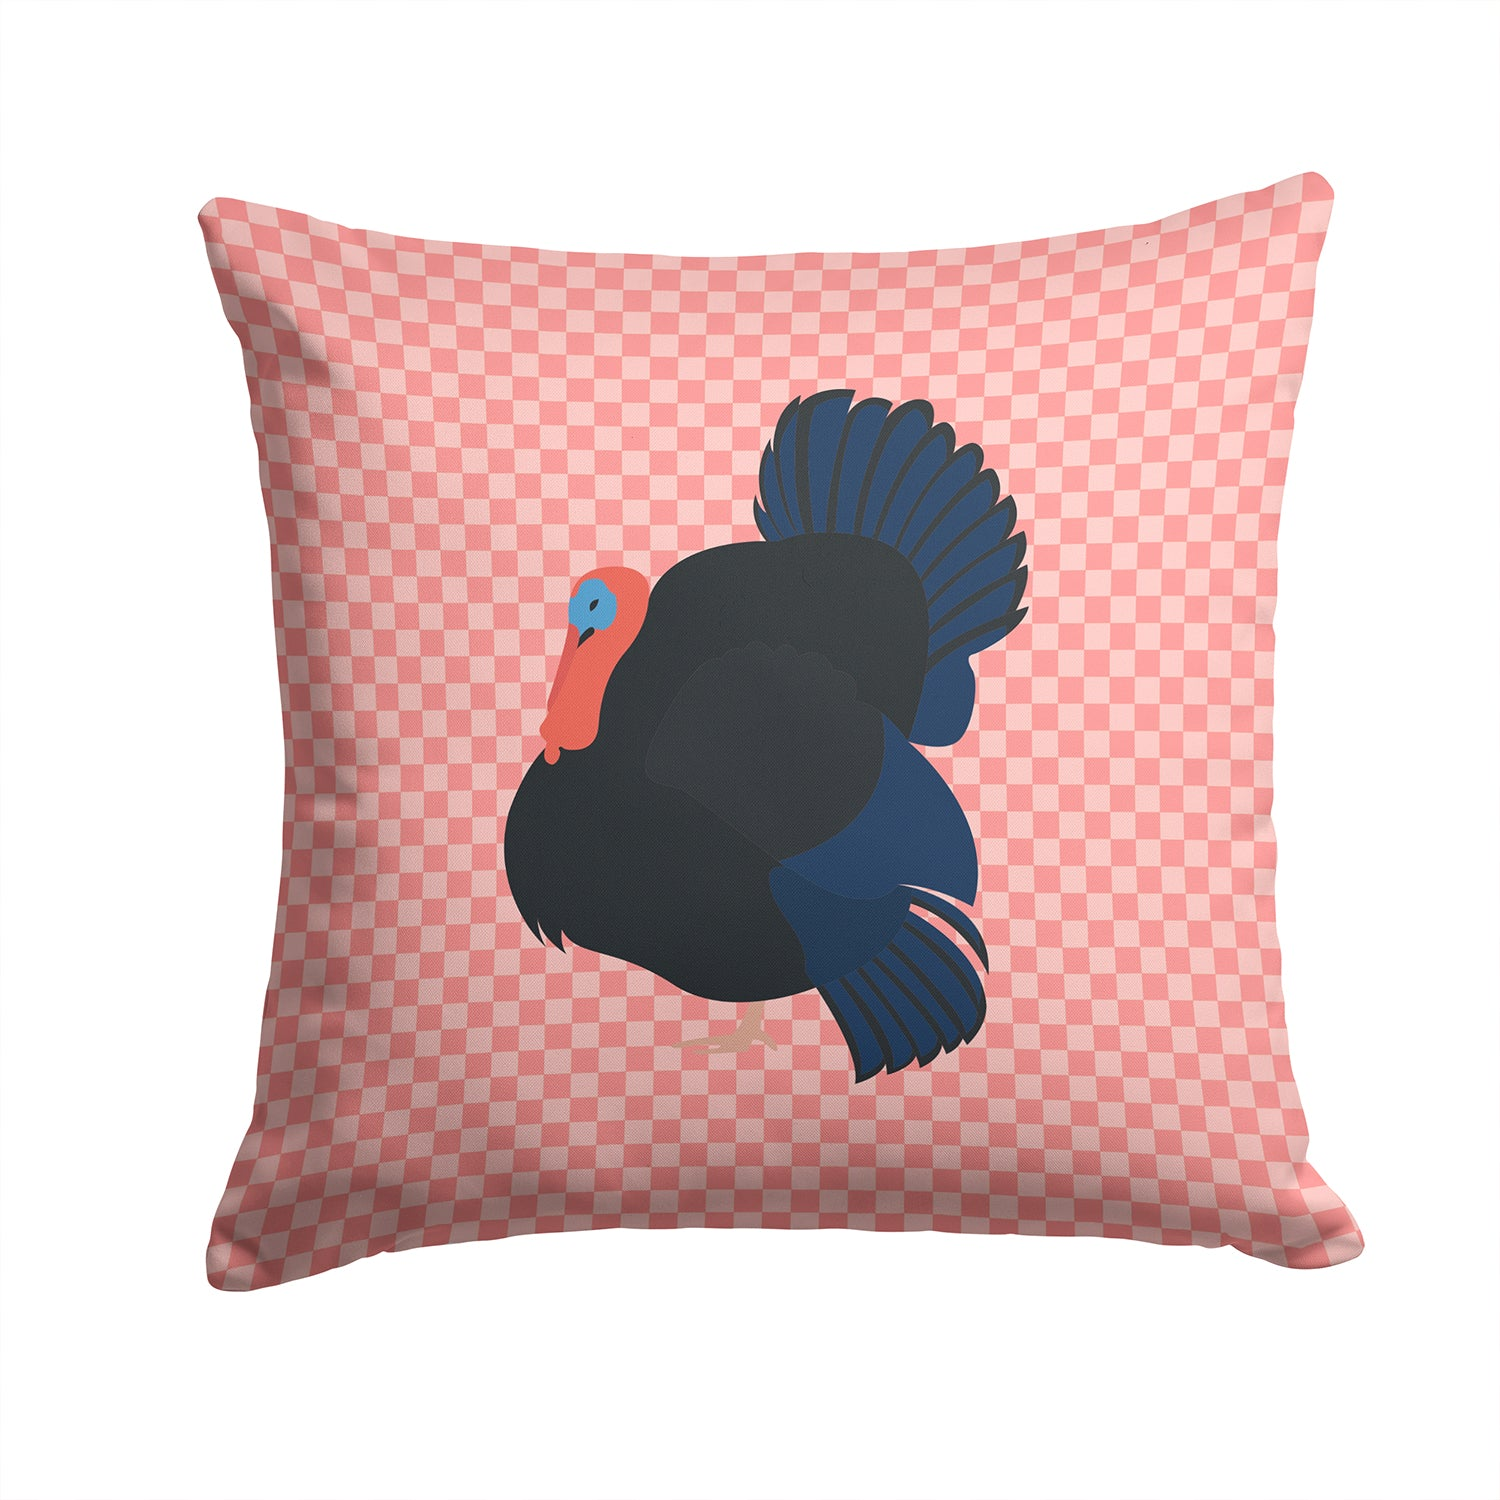 Norfolk Black Turkey Pink Check Fabric Decorative Pillow BB7985PW1414 by Caroline's Treasures